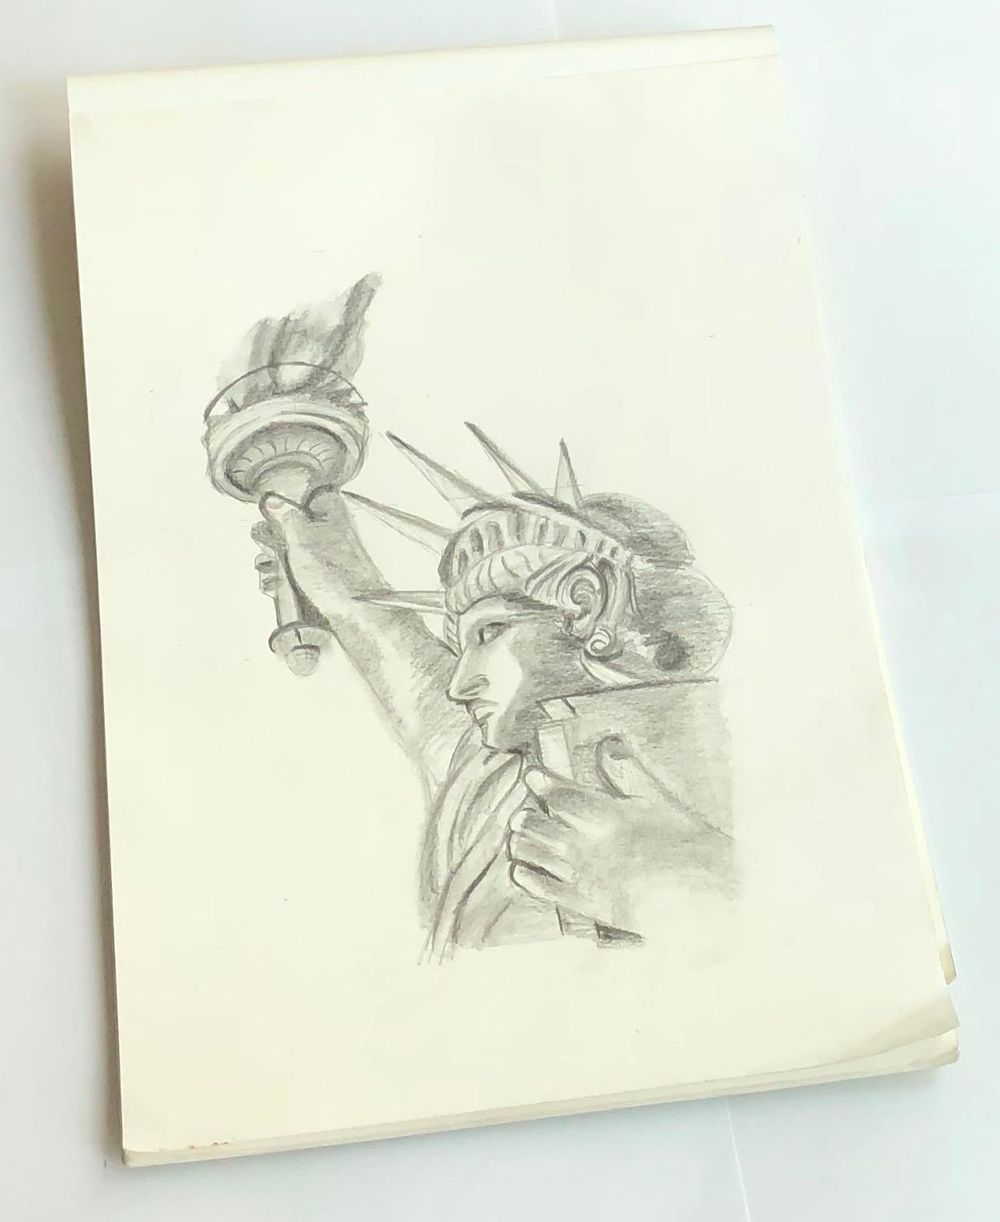 Statue drawing - image 2 - student project